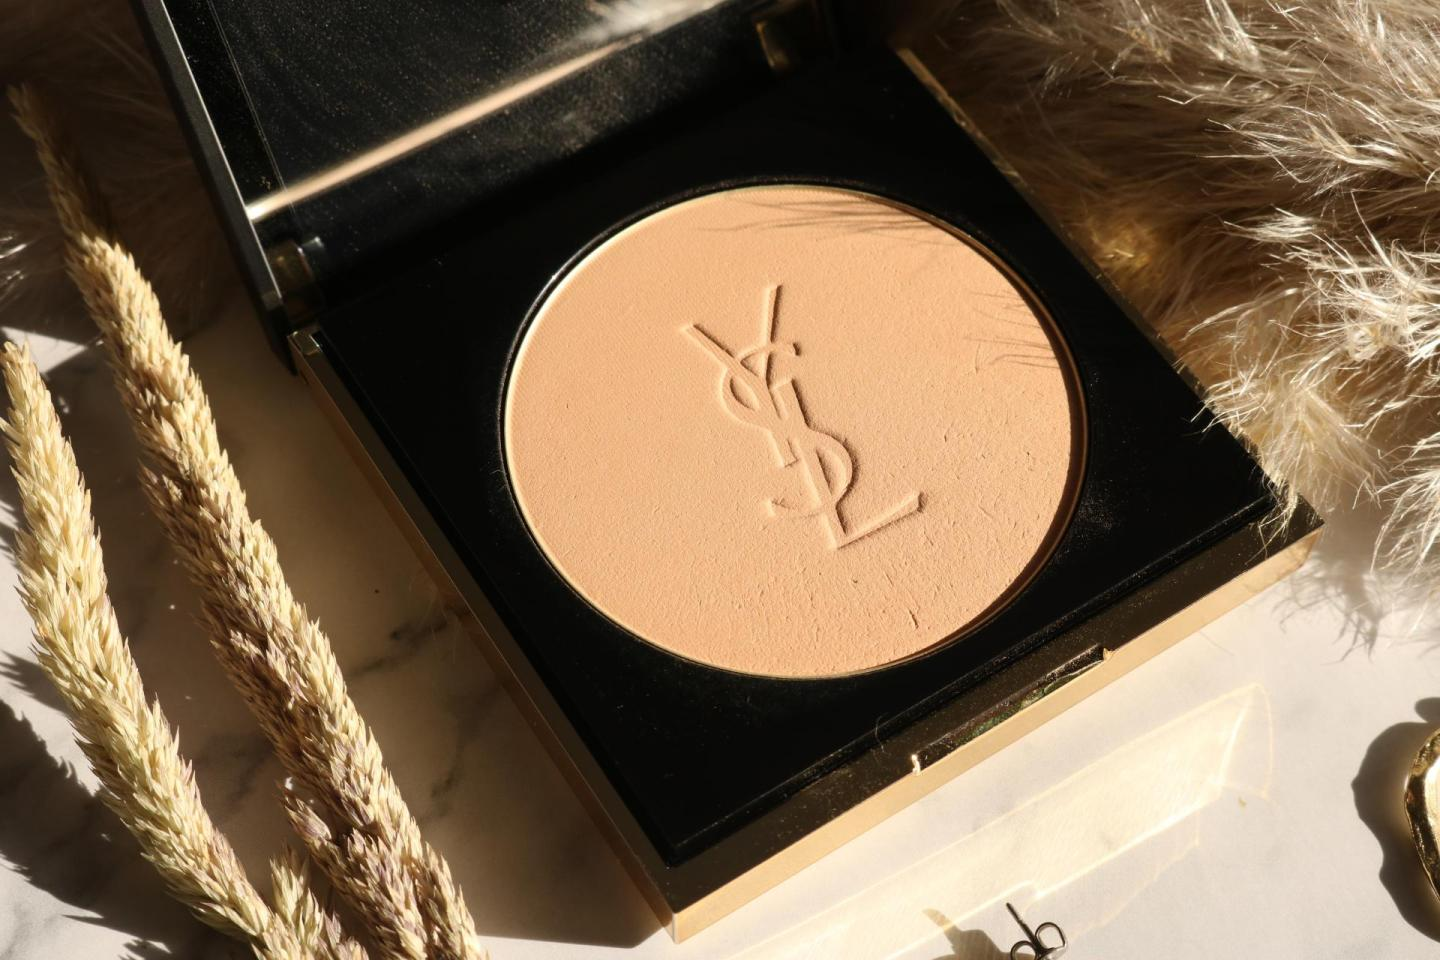 Yves Saint Laurent All Hours Setting Powder review